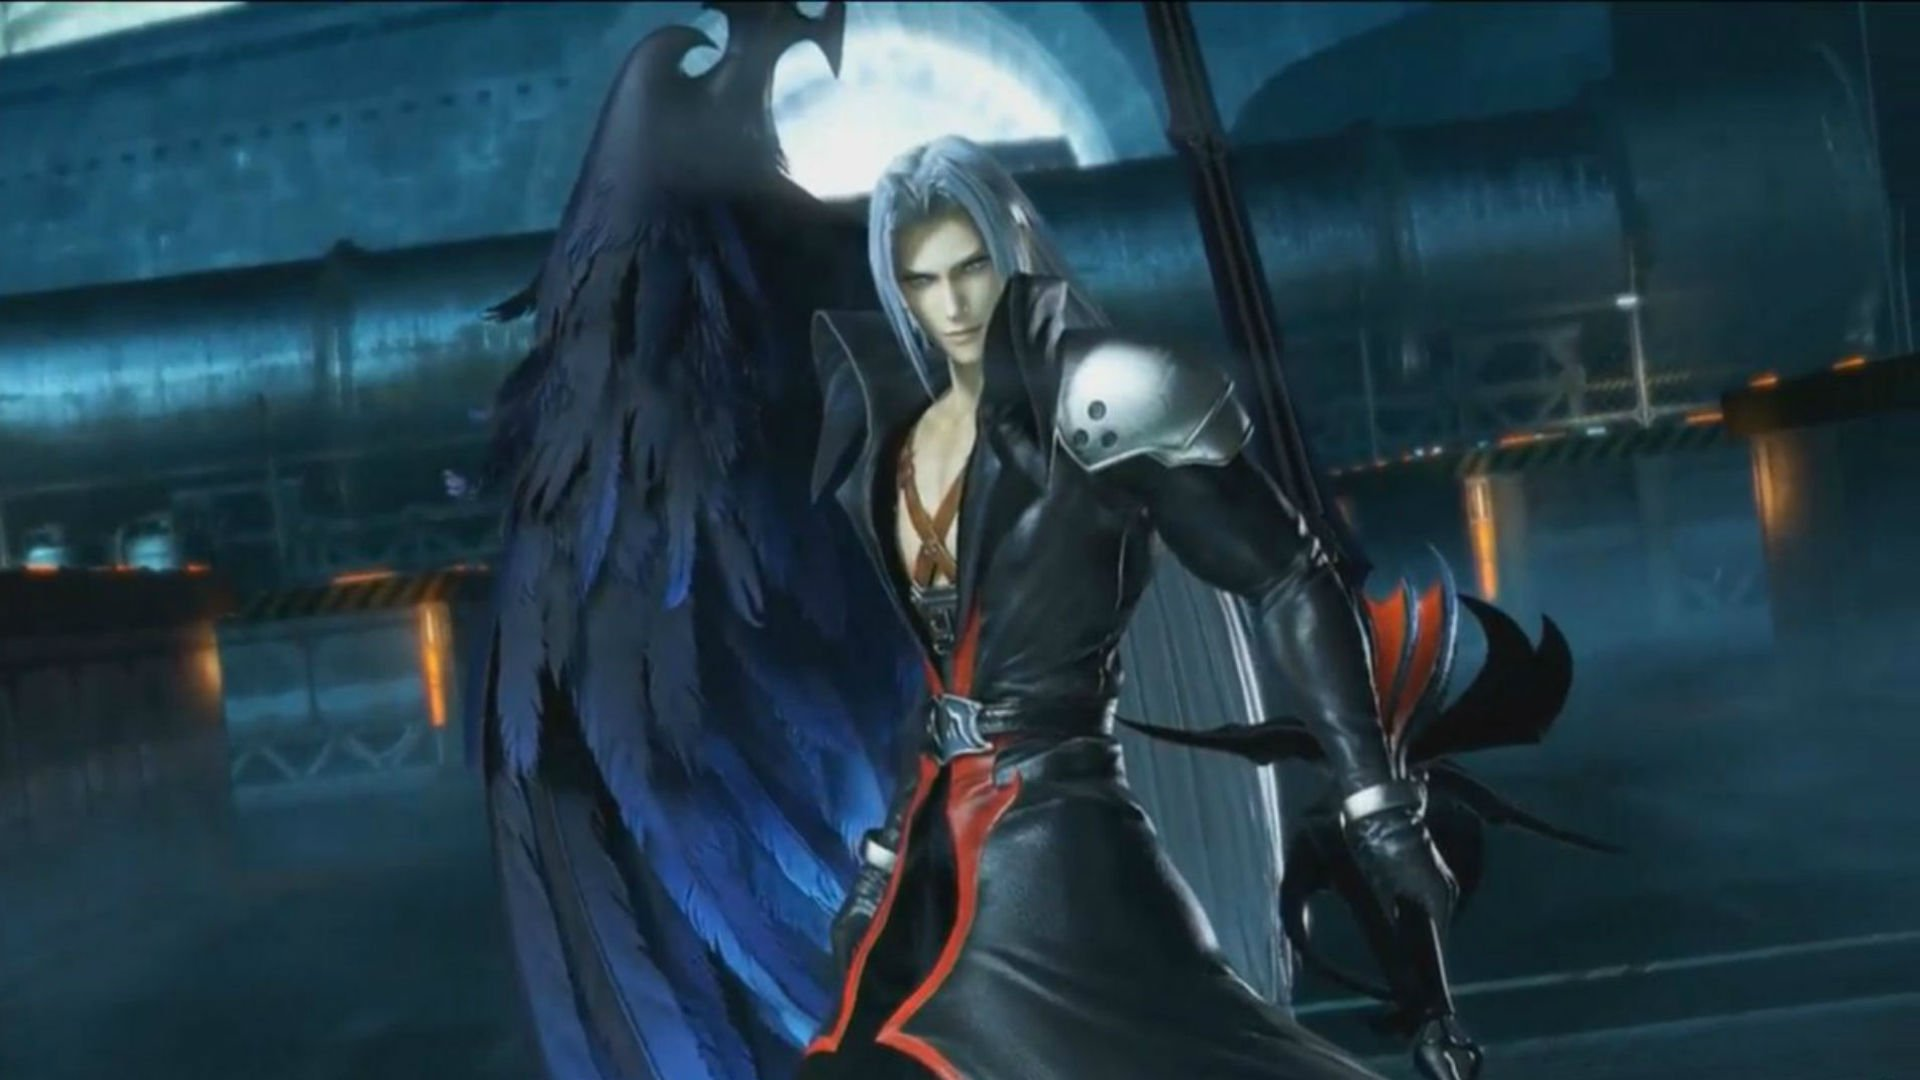 Sephiroth is getting his Kingdom Hearts outfit in Dissidia ... Antonio Banderas